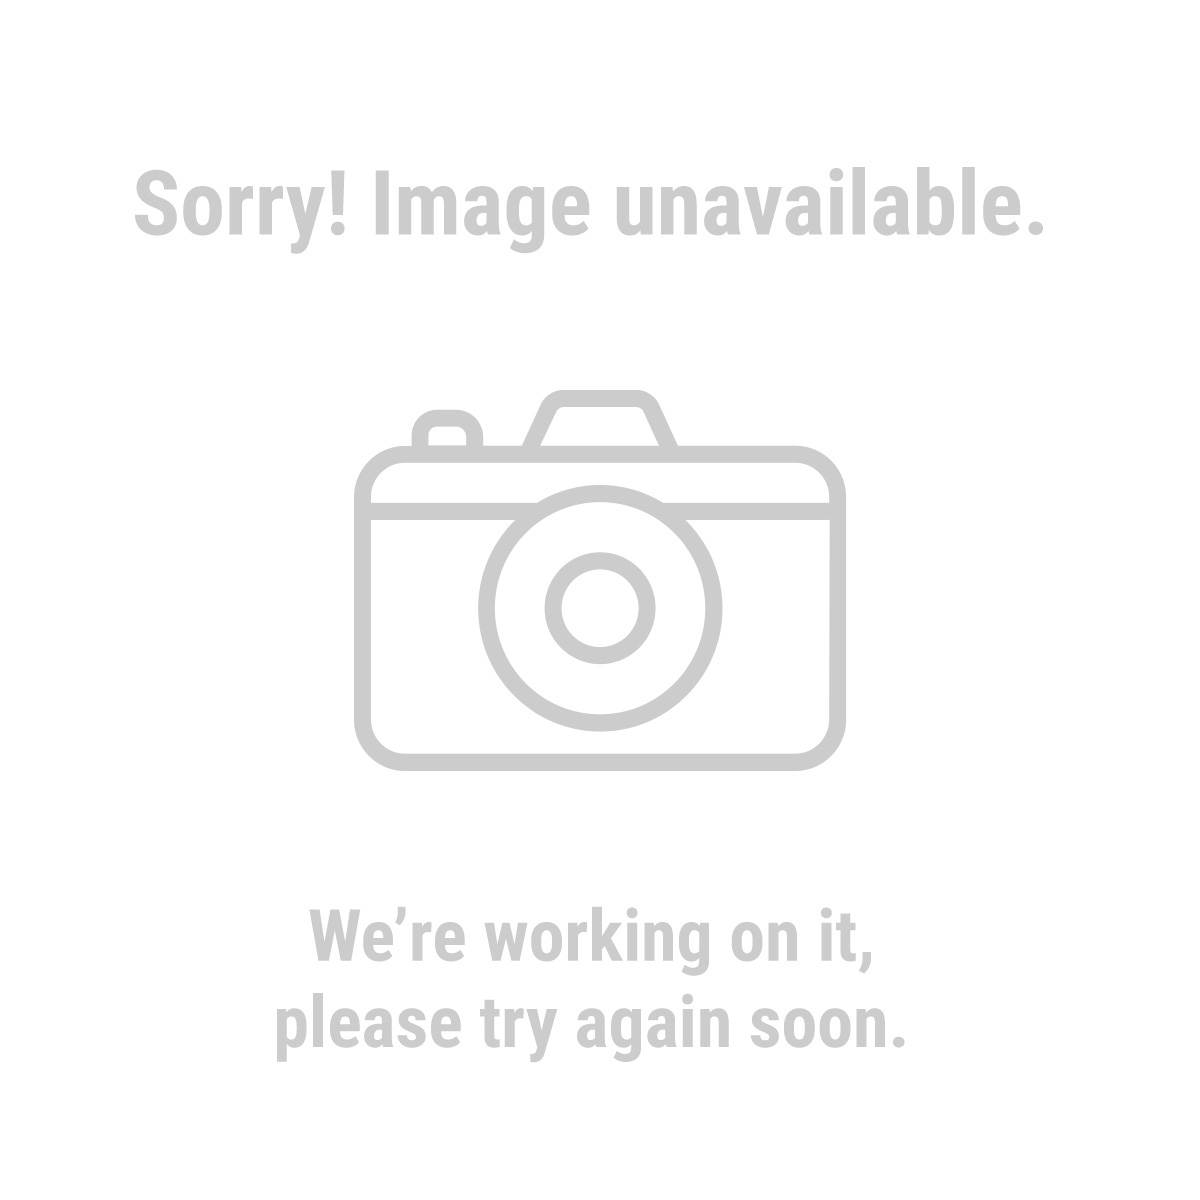 350 lbs. Capacity Large Service Cart with Locking Drawer